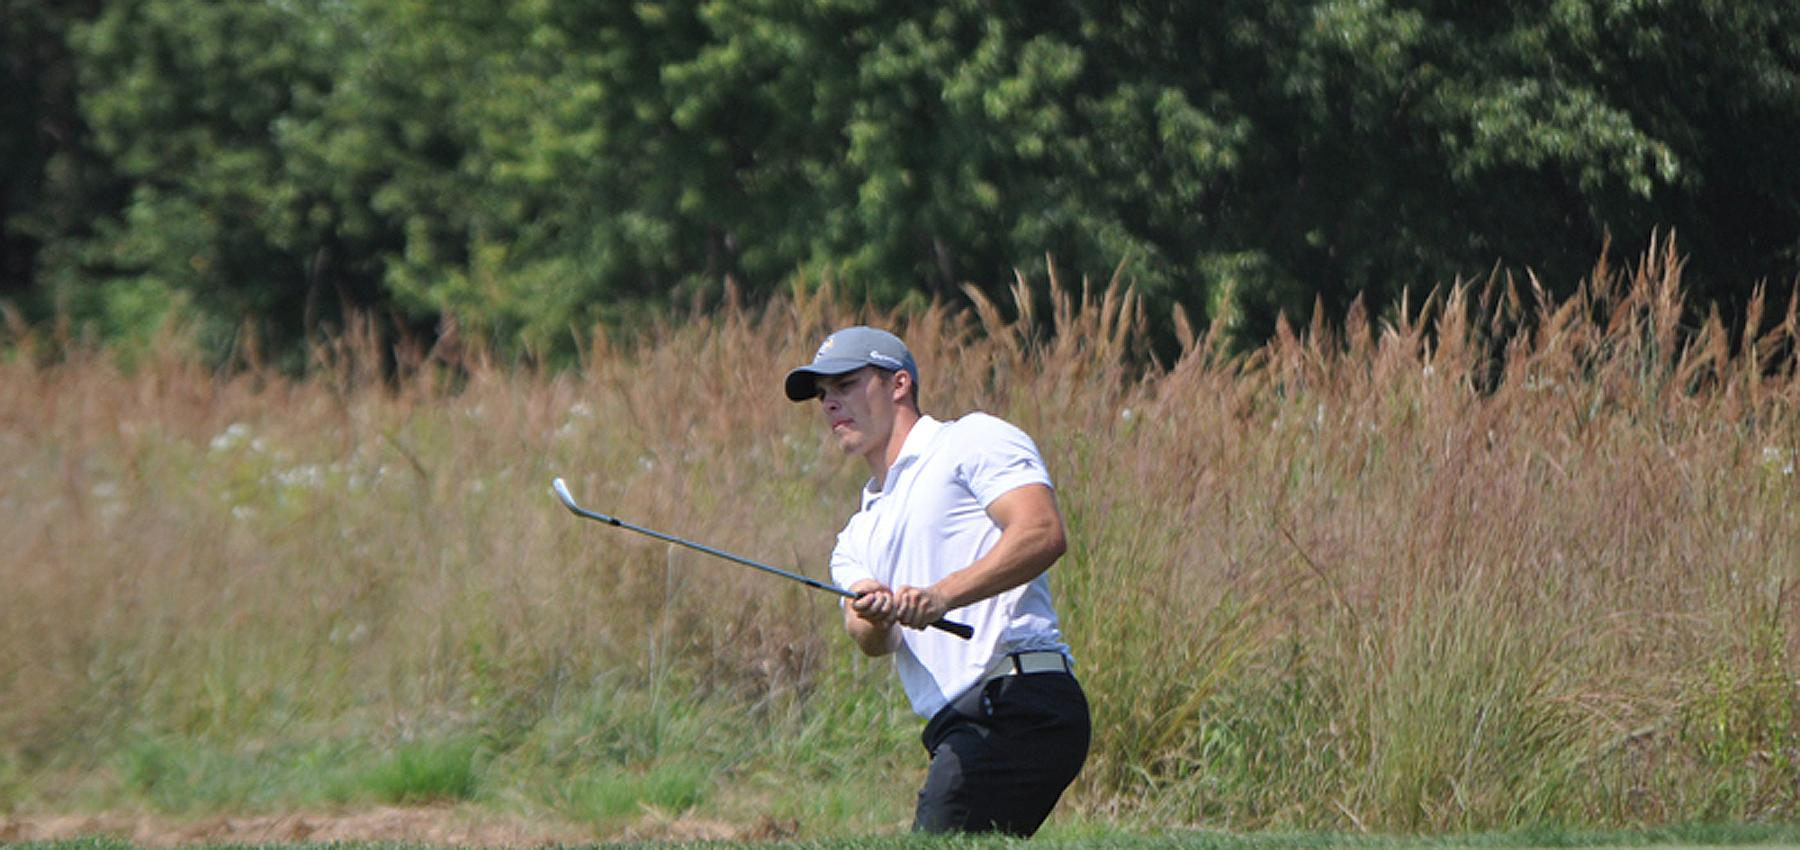 Men's Golf Posts Improved Second Round, Led by Buntenbach's 68, in Fifth-Place Finish at William Woods